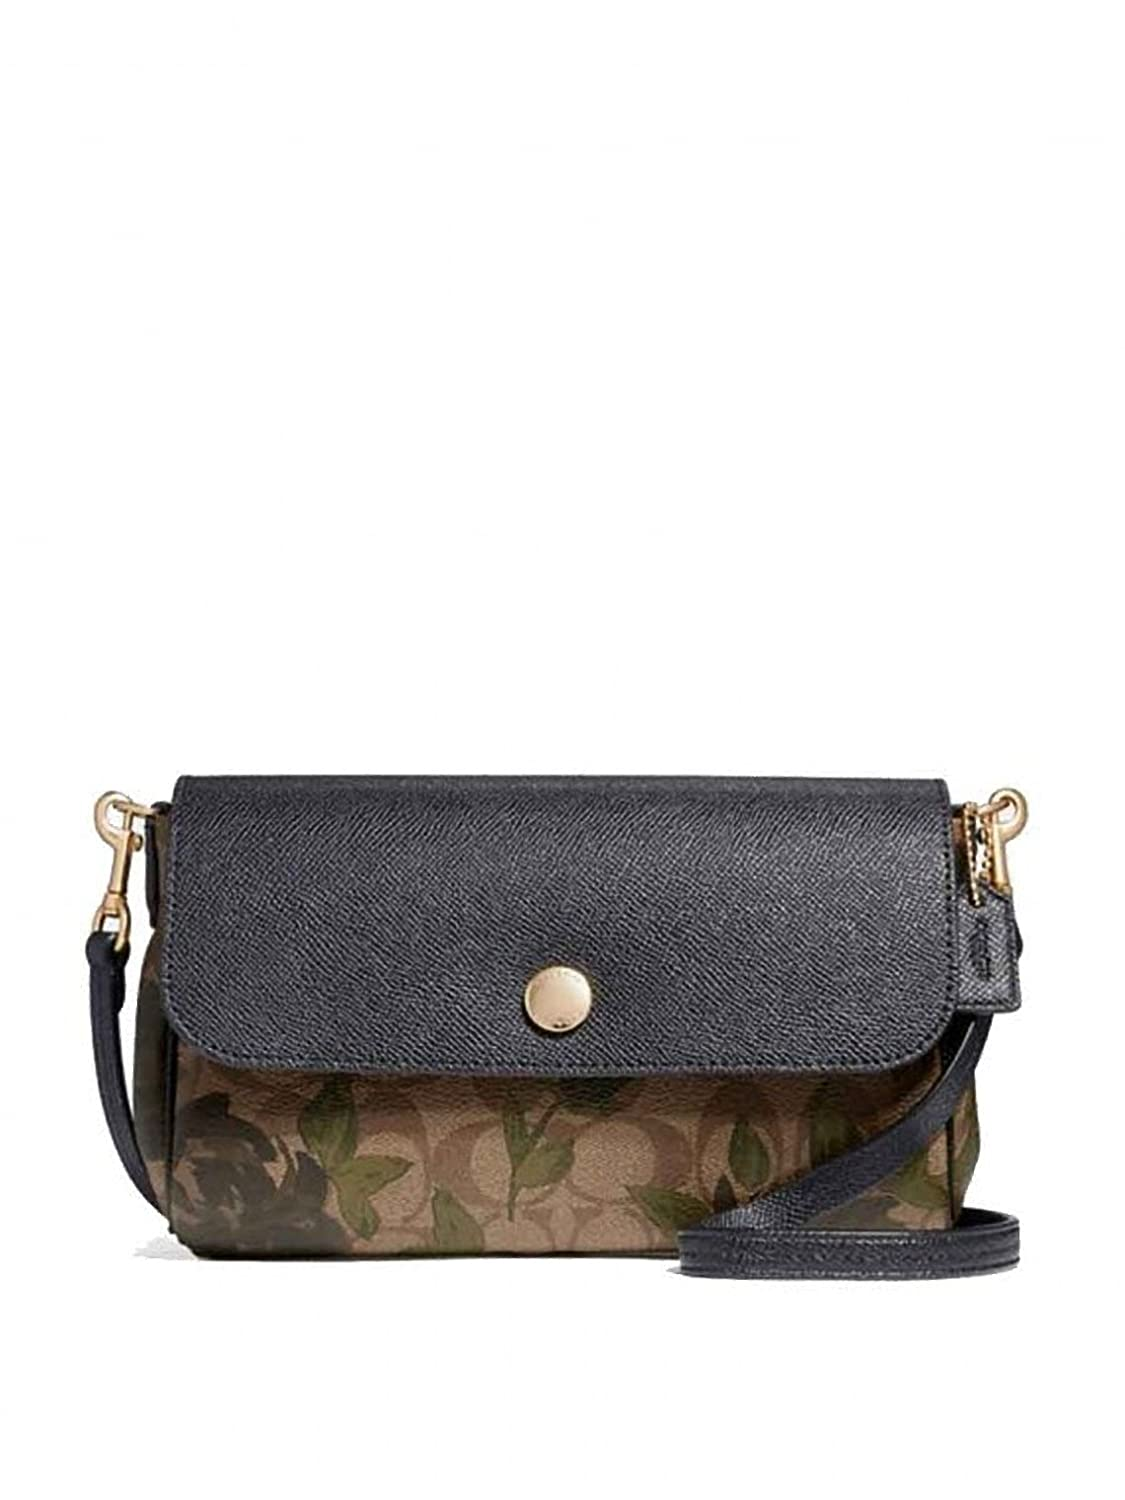 73f09a82f623 COACH F28188 REVERSIBLE CROSSBODY WITH CAMO ROSE FLORAL PRINT BAG ...